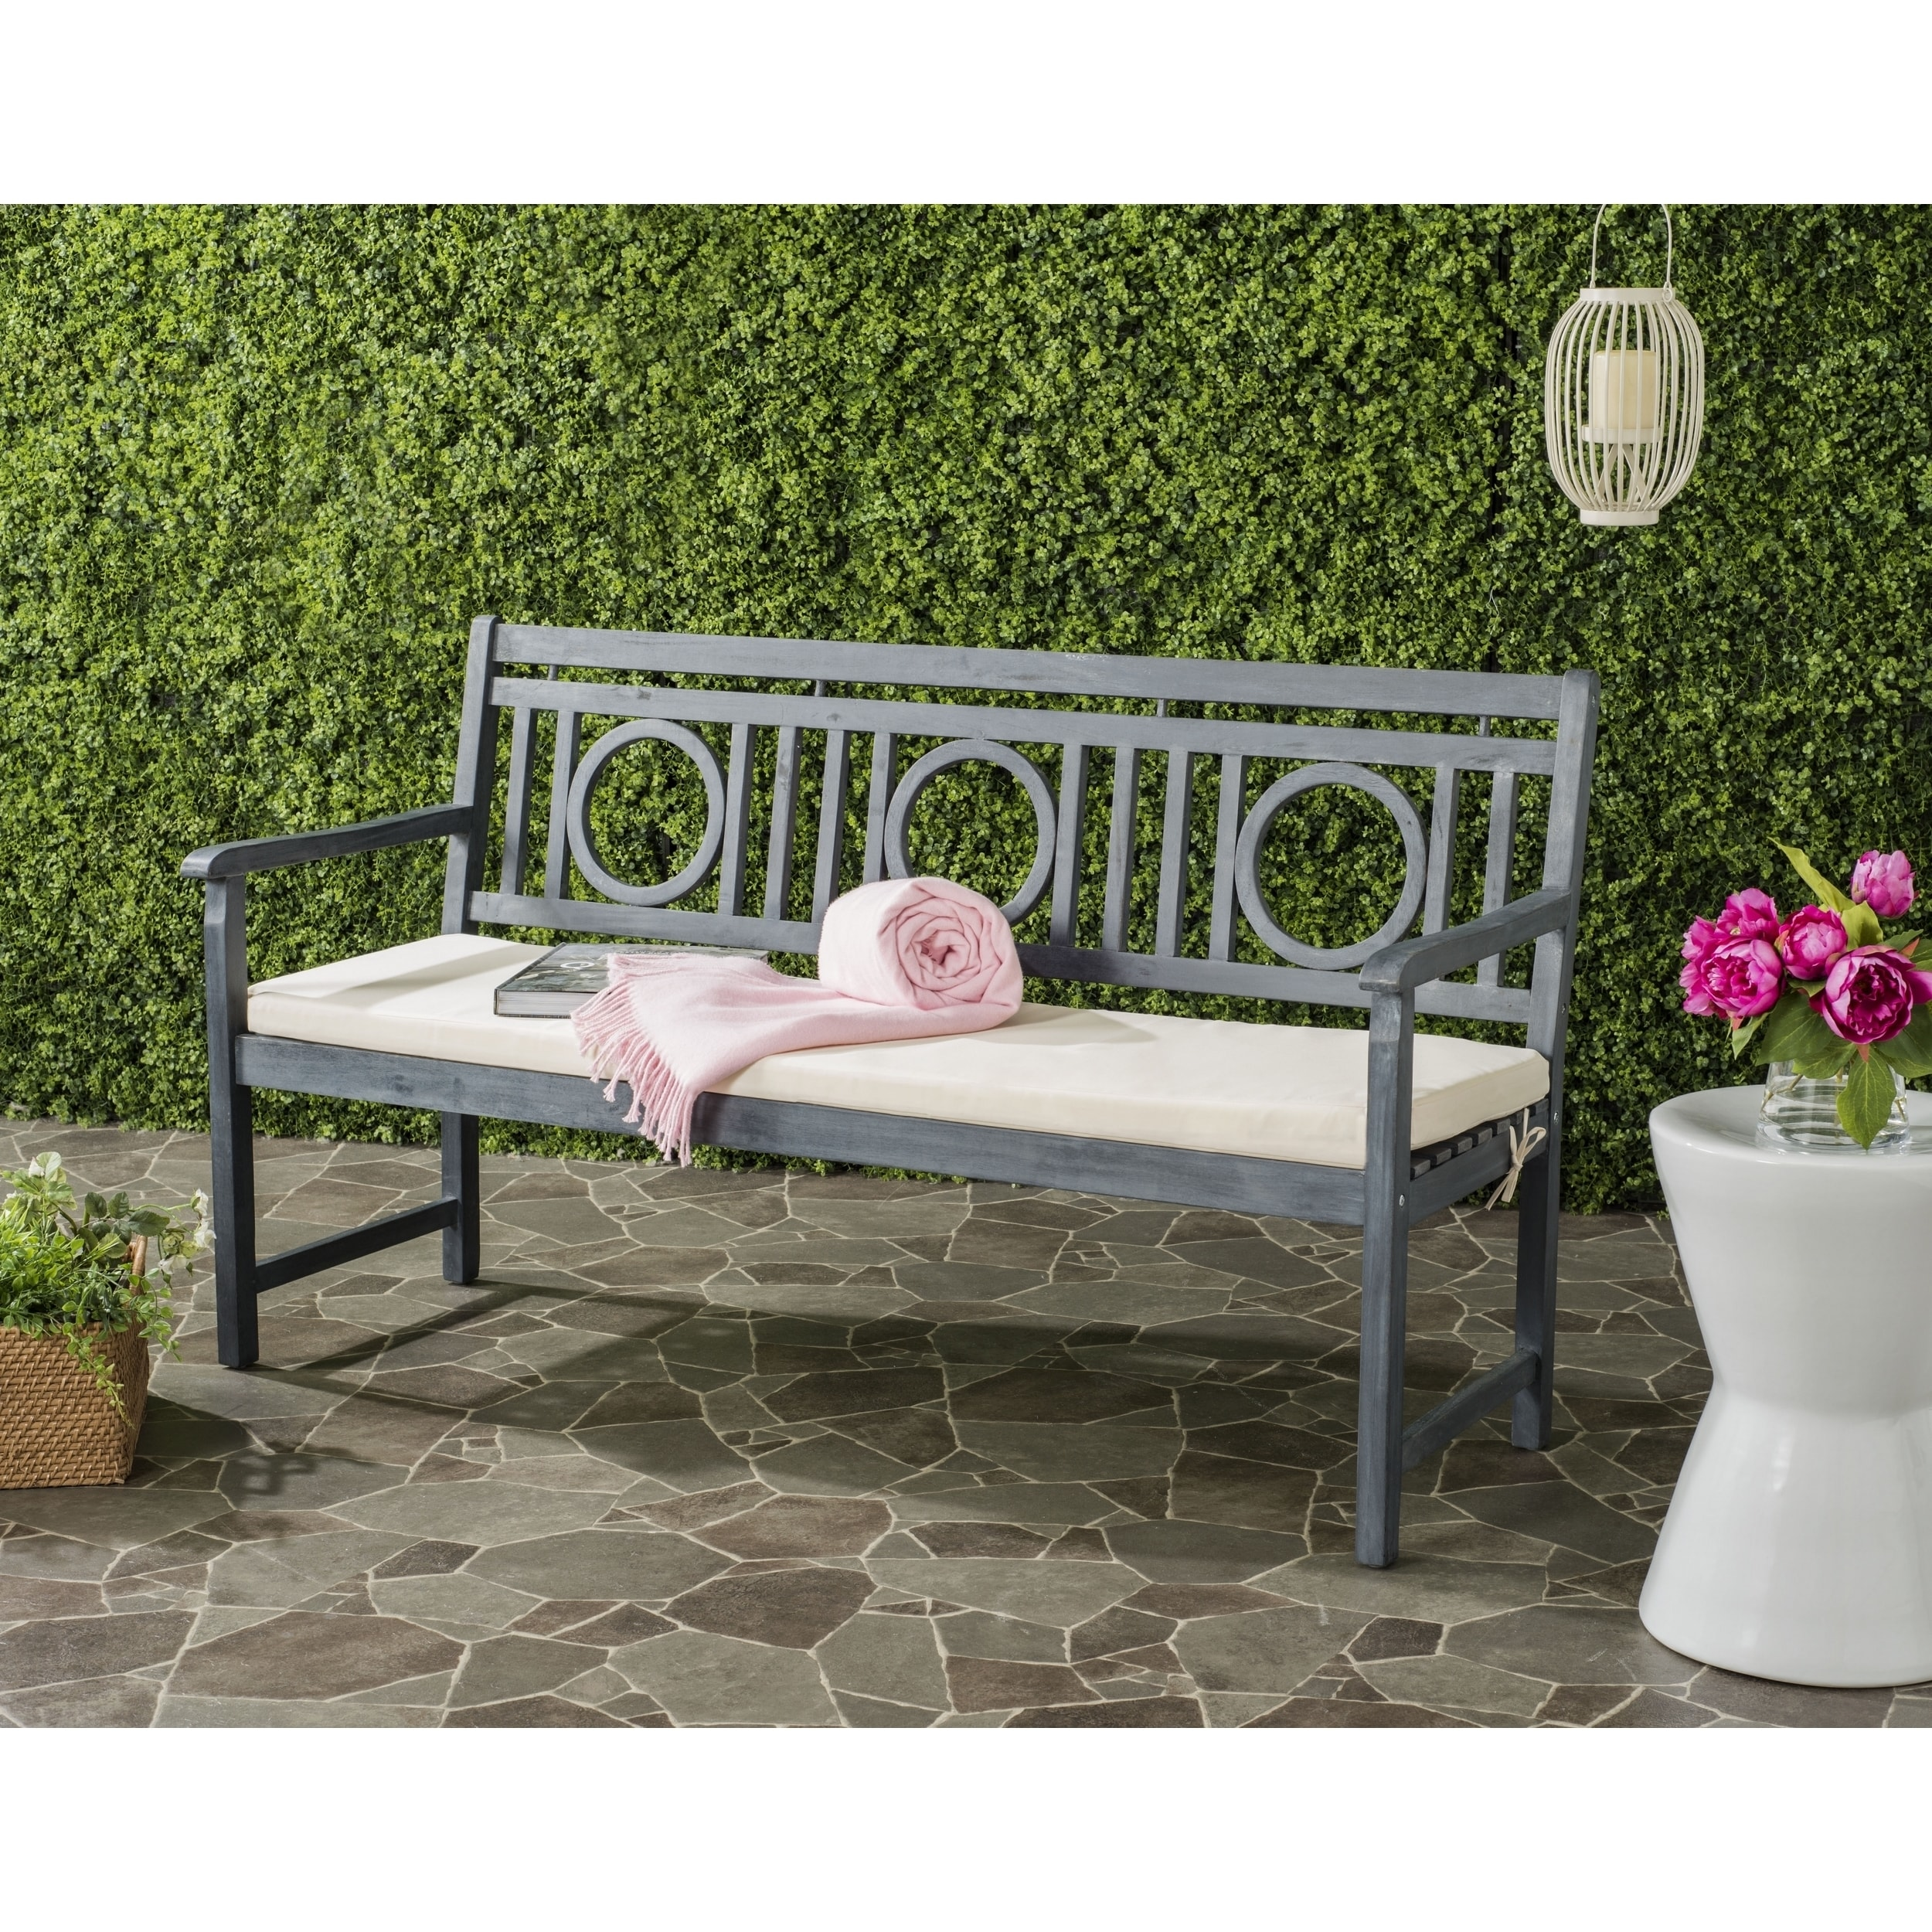 Safavieh Montclair Outdoor Ash Grey Beige 3 Seat Bench